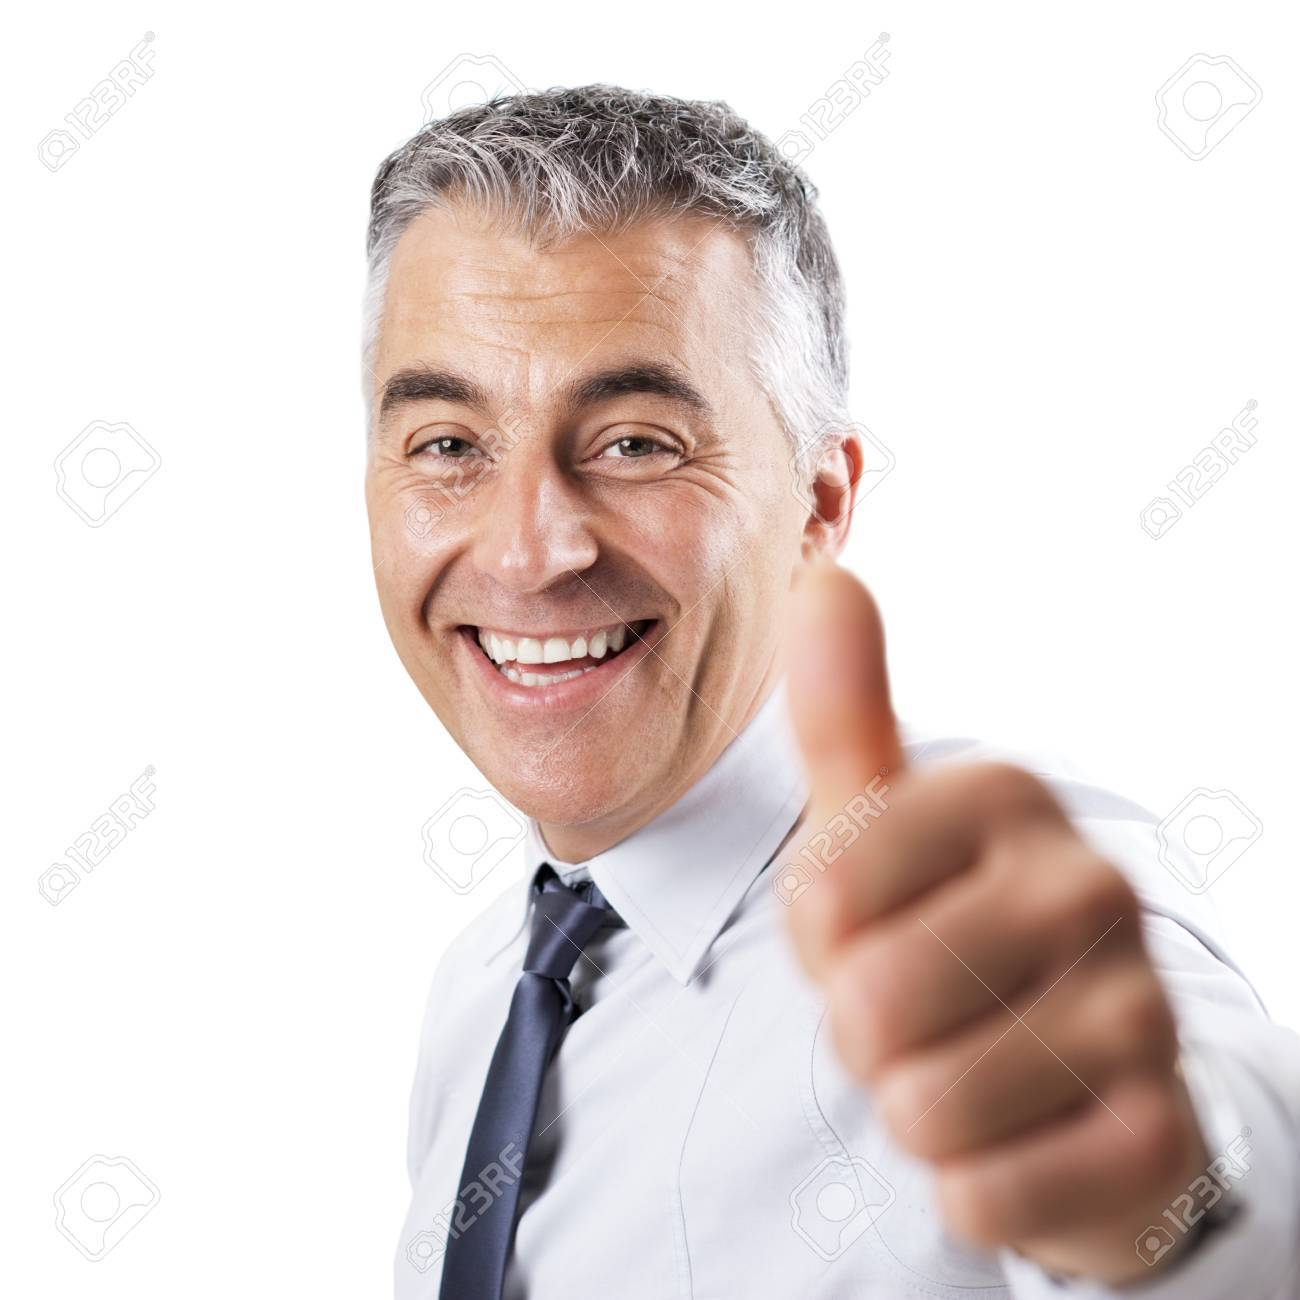 smiling confident businessman tumbs up on white background stock